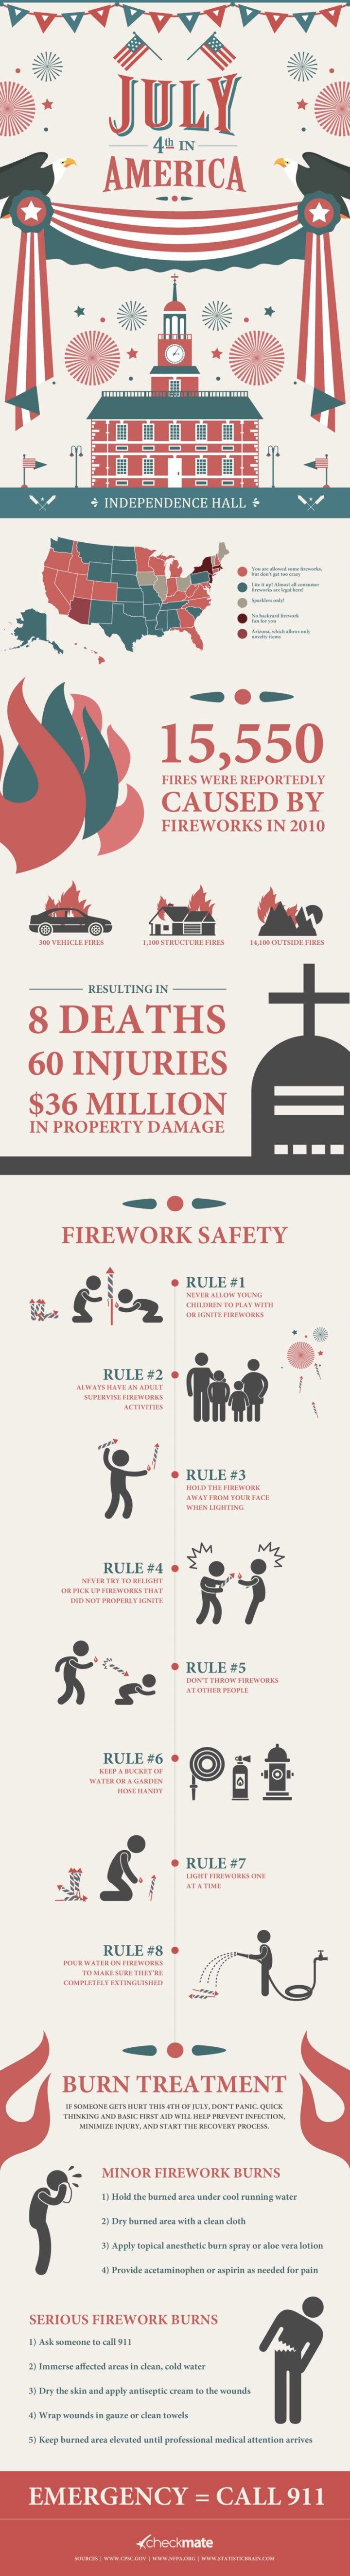 fireworks-101-4th-of-july-safety_51c9e7049cb42